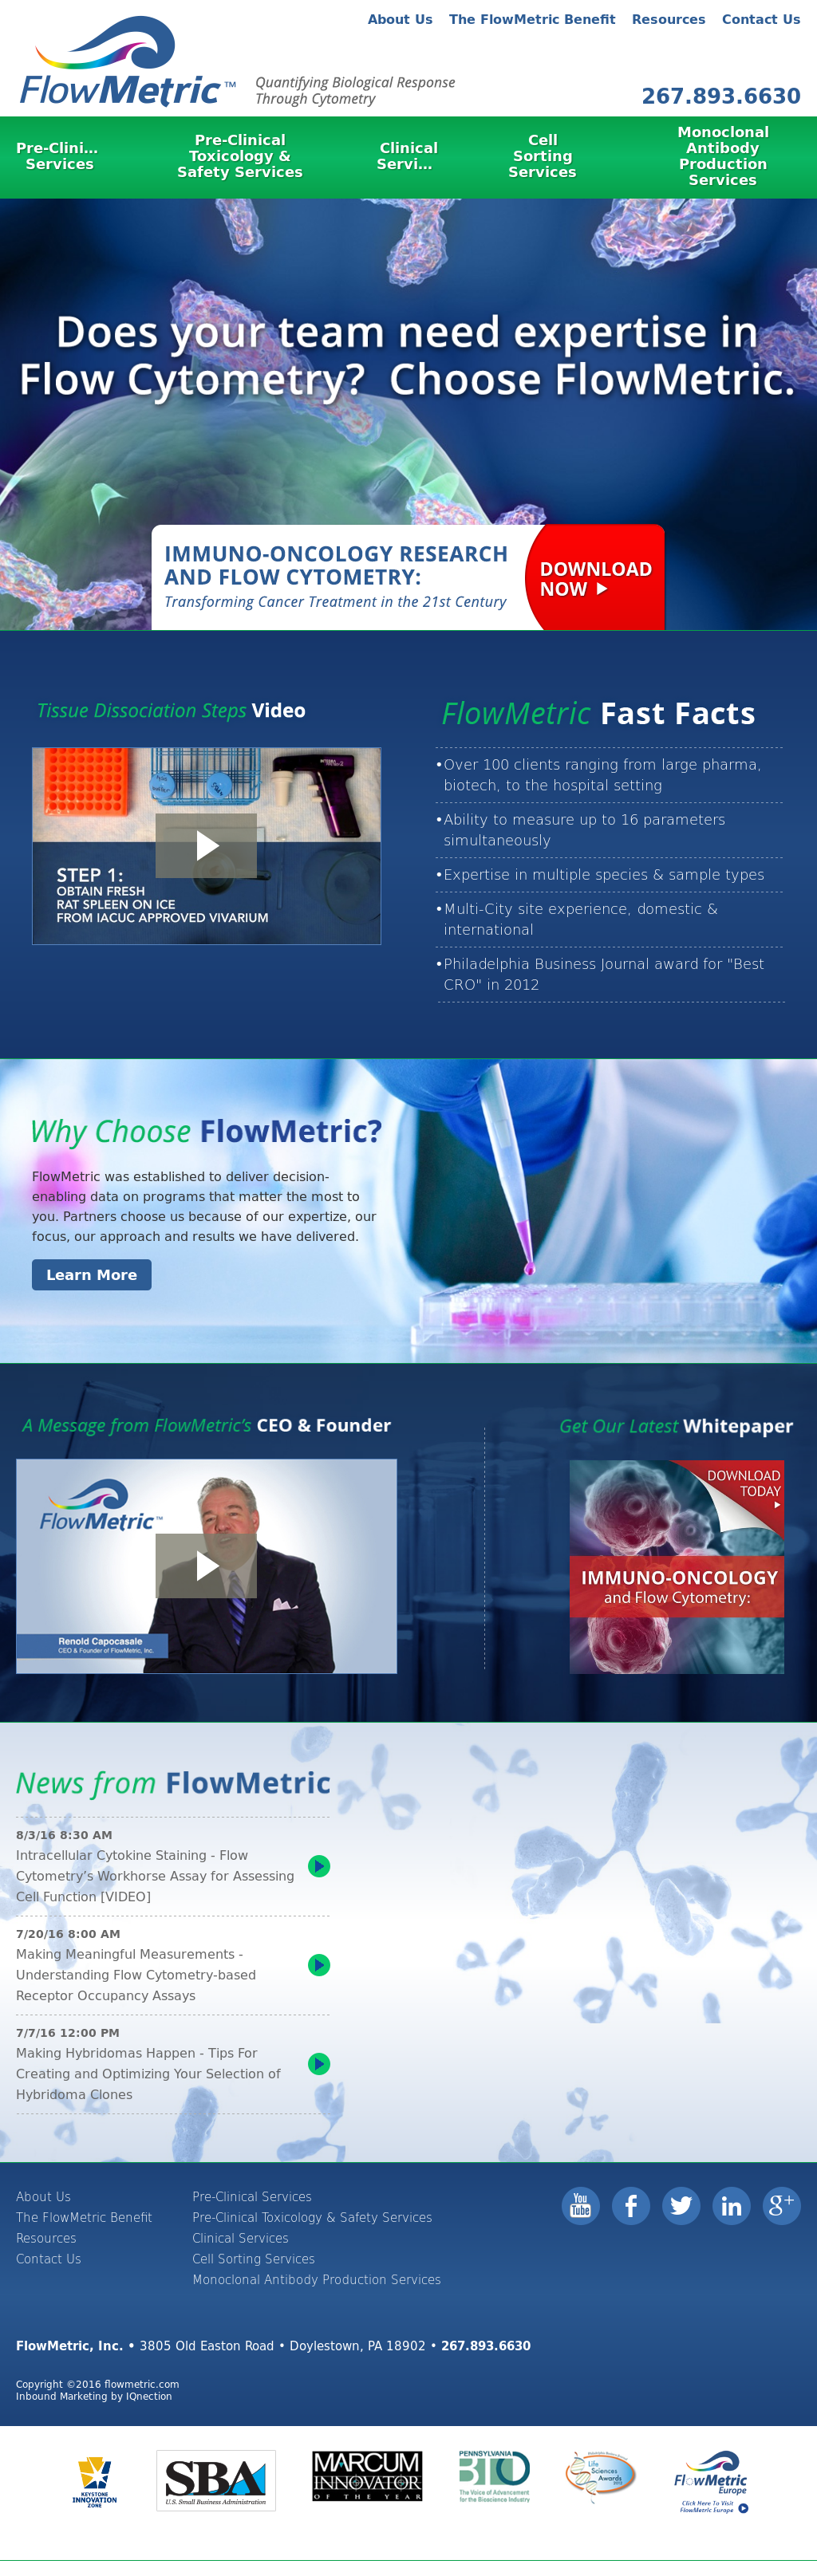 Flowcytometryservices Competitors, Revenue and Employees